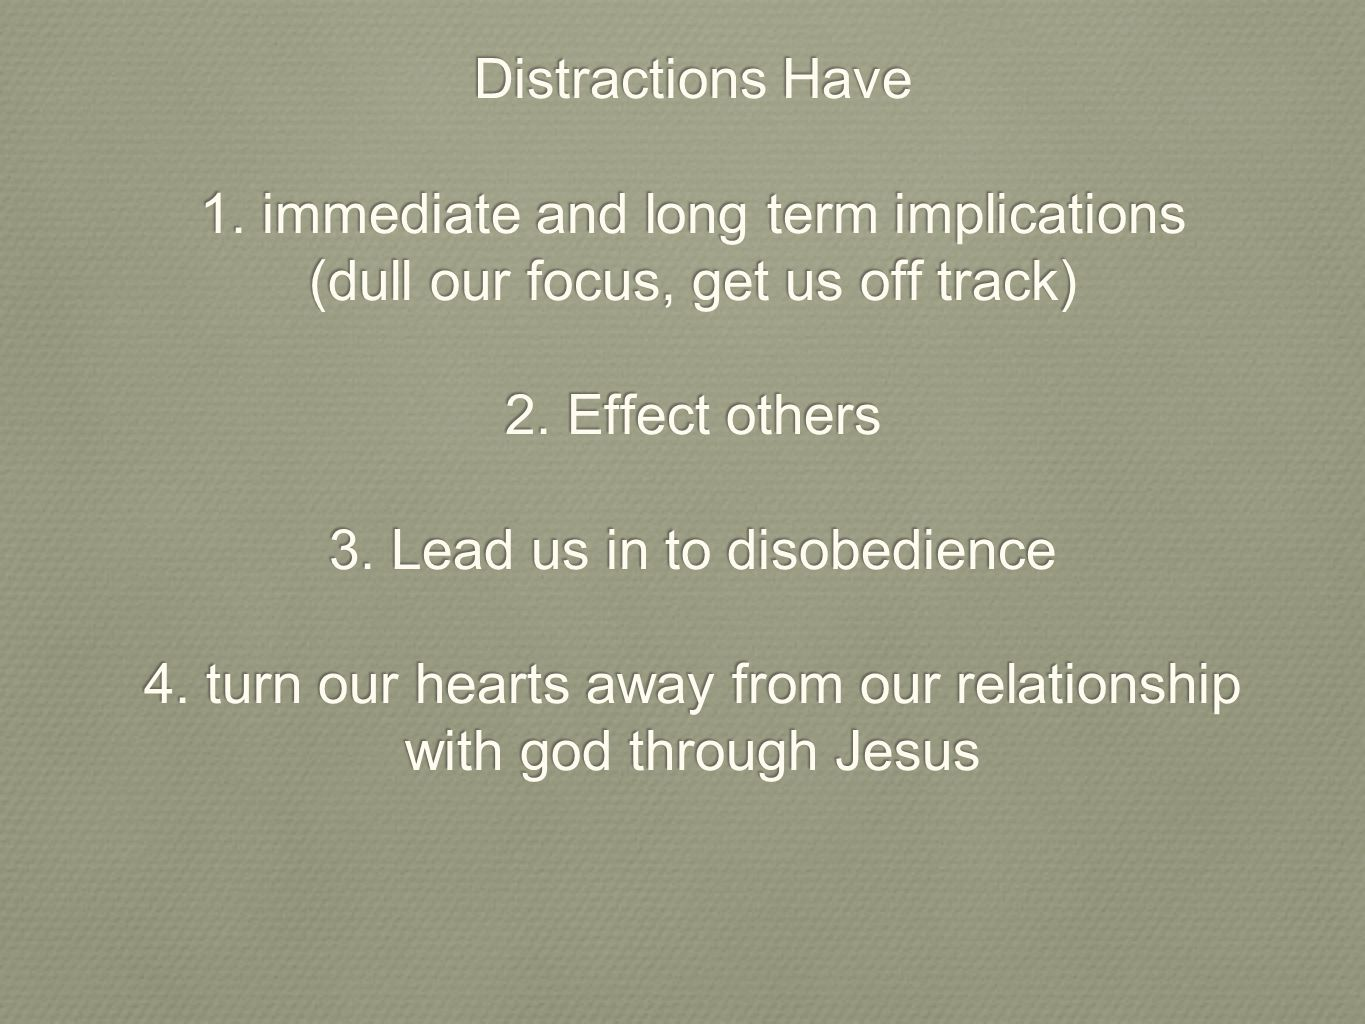 Distractions Have 1. immediate and long term implications (dull our focus, get us off track) 2. Effect others 3. Lead us in to disobedience 4. turn ou